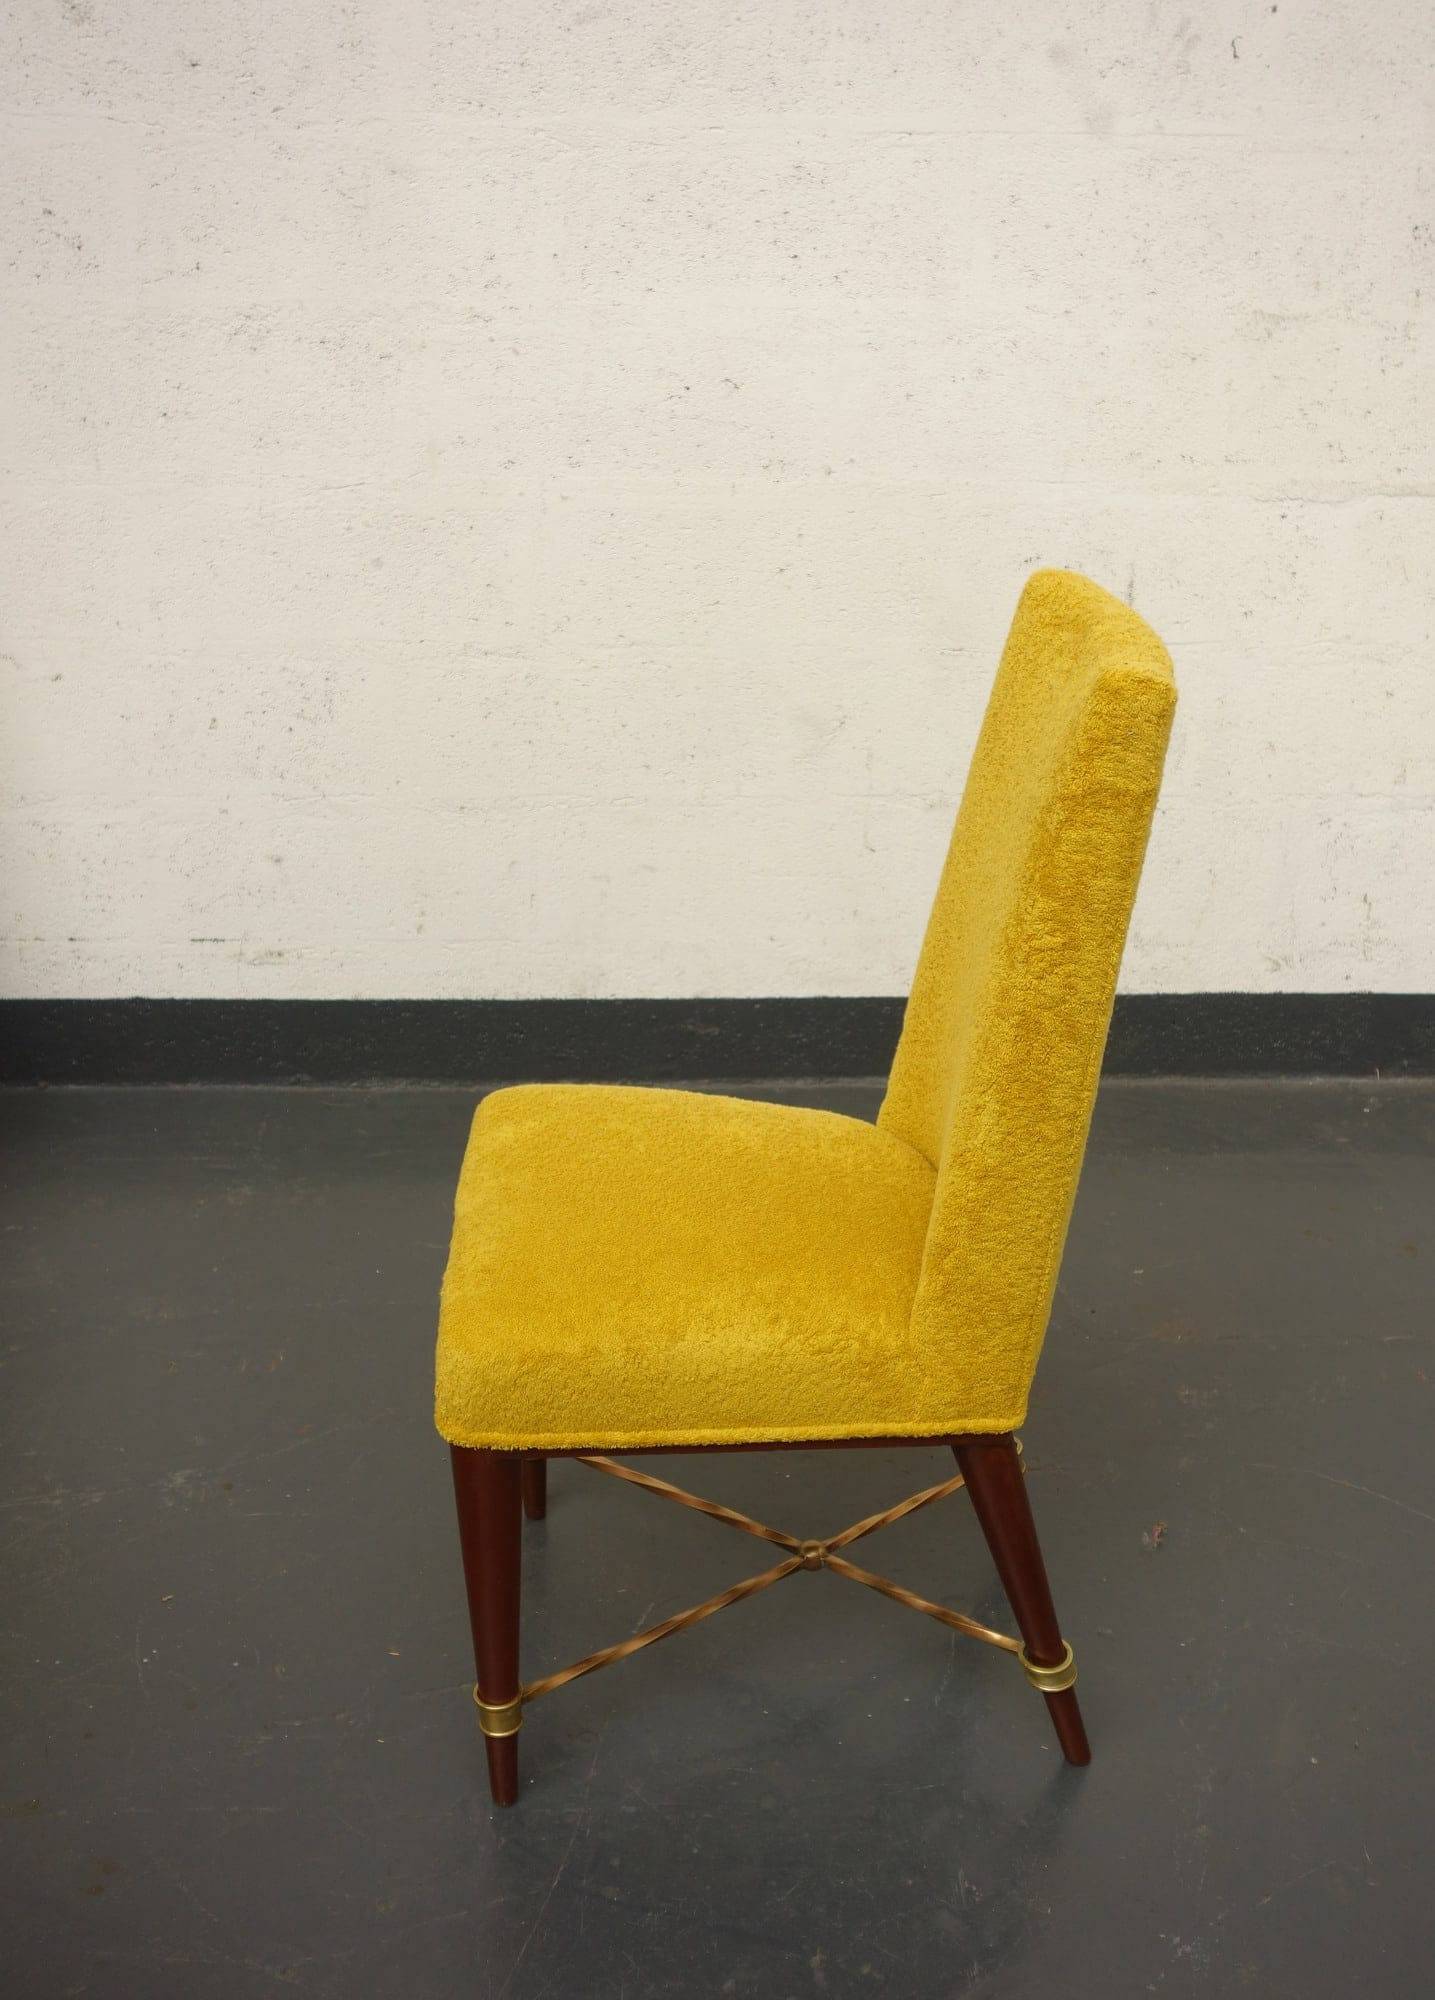 Jean Royère, Set of 8 chairs, vue 04